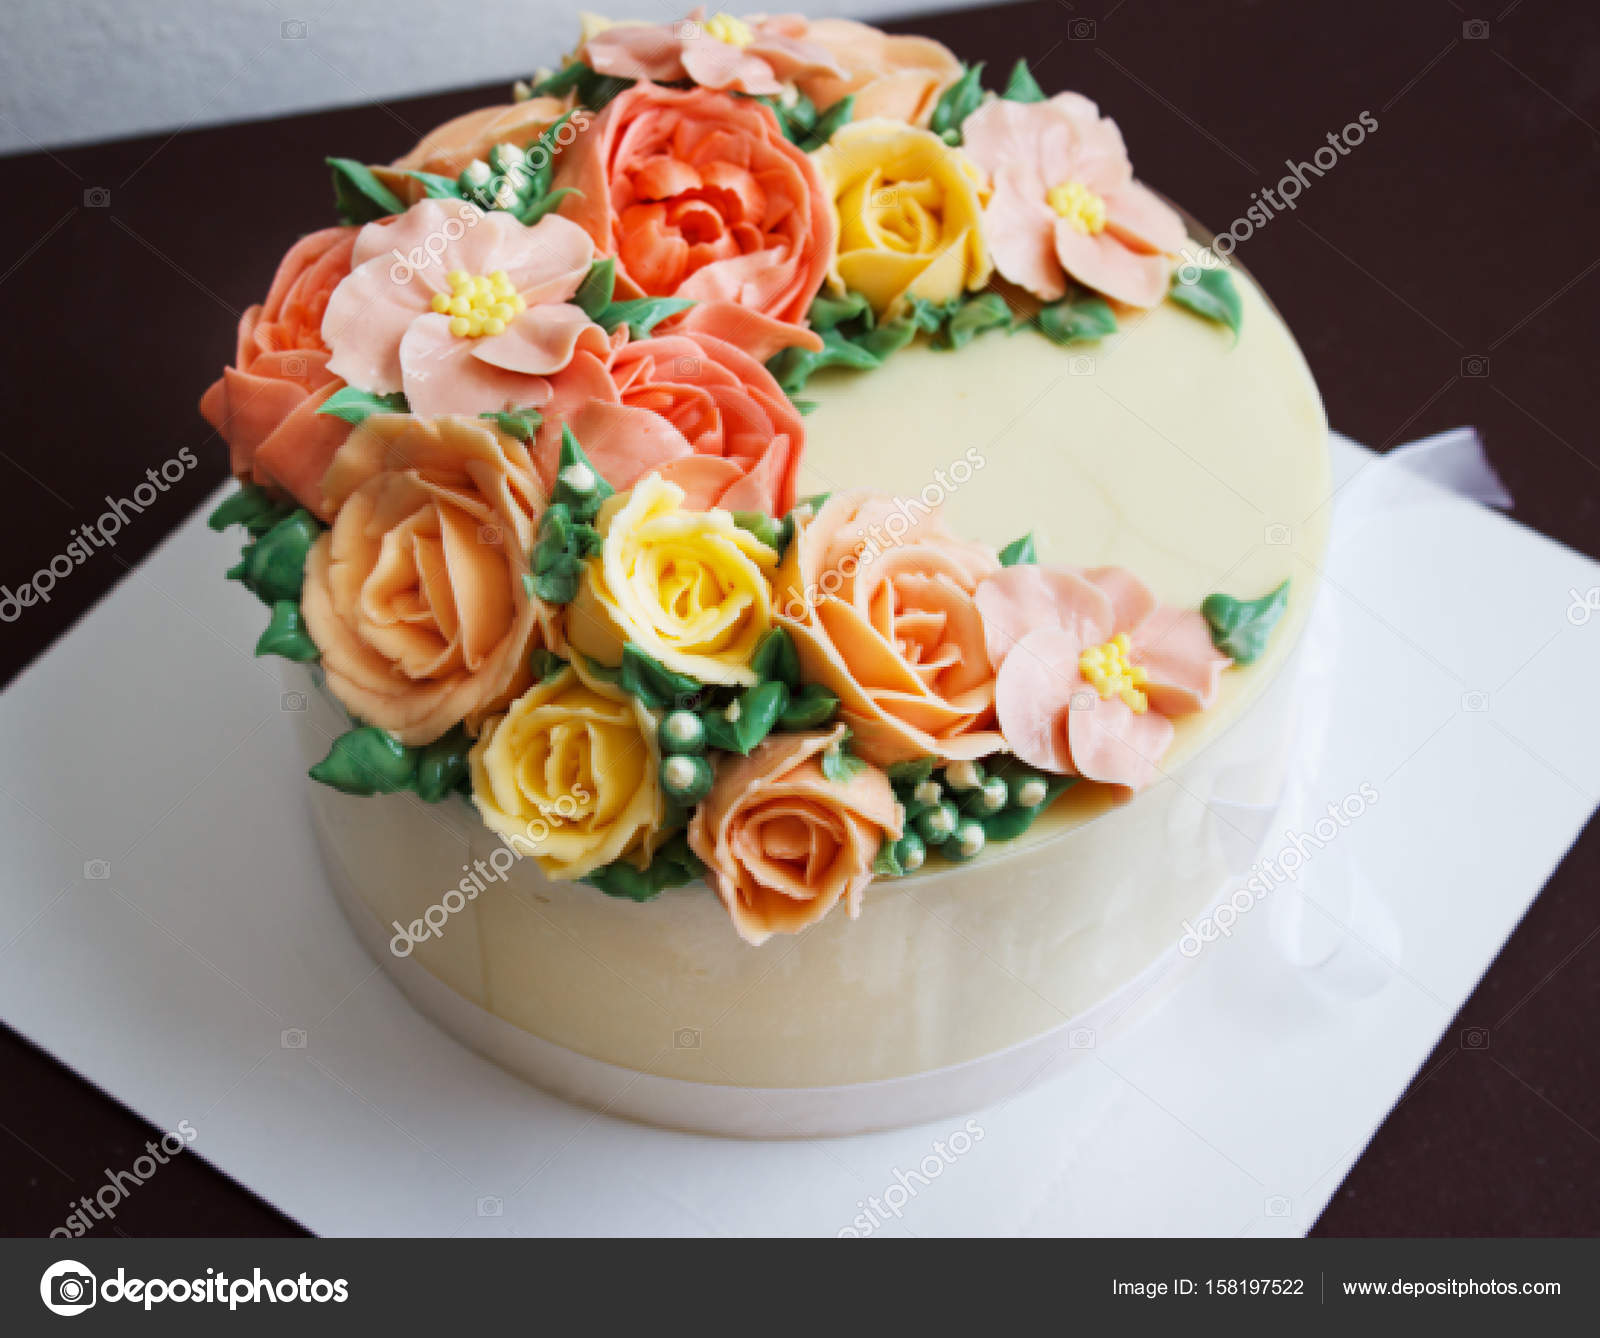 Birthday cake with flowers rose on white background stock photo birthday cake with flowers rose on white background stock photo izmirmasajfo